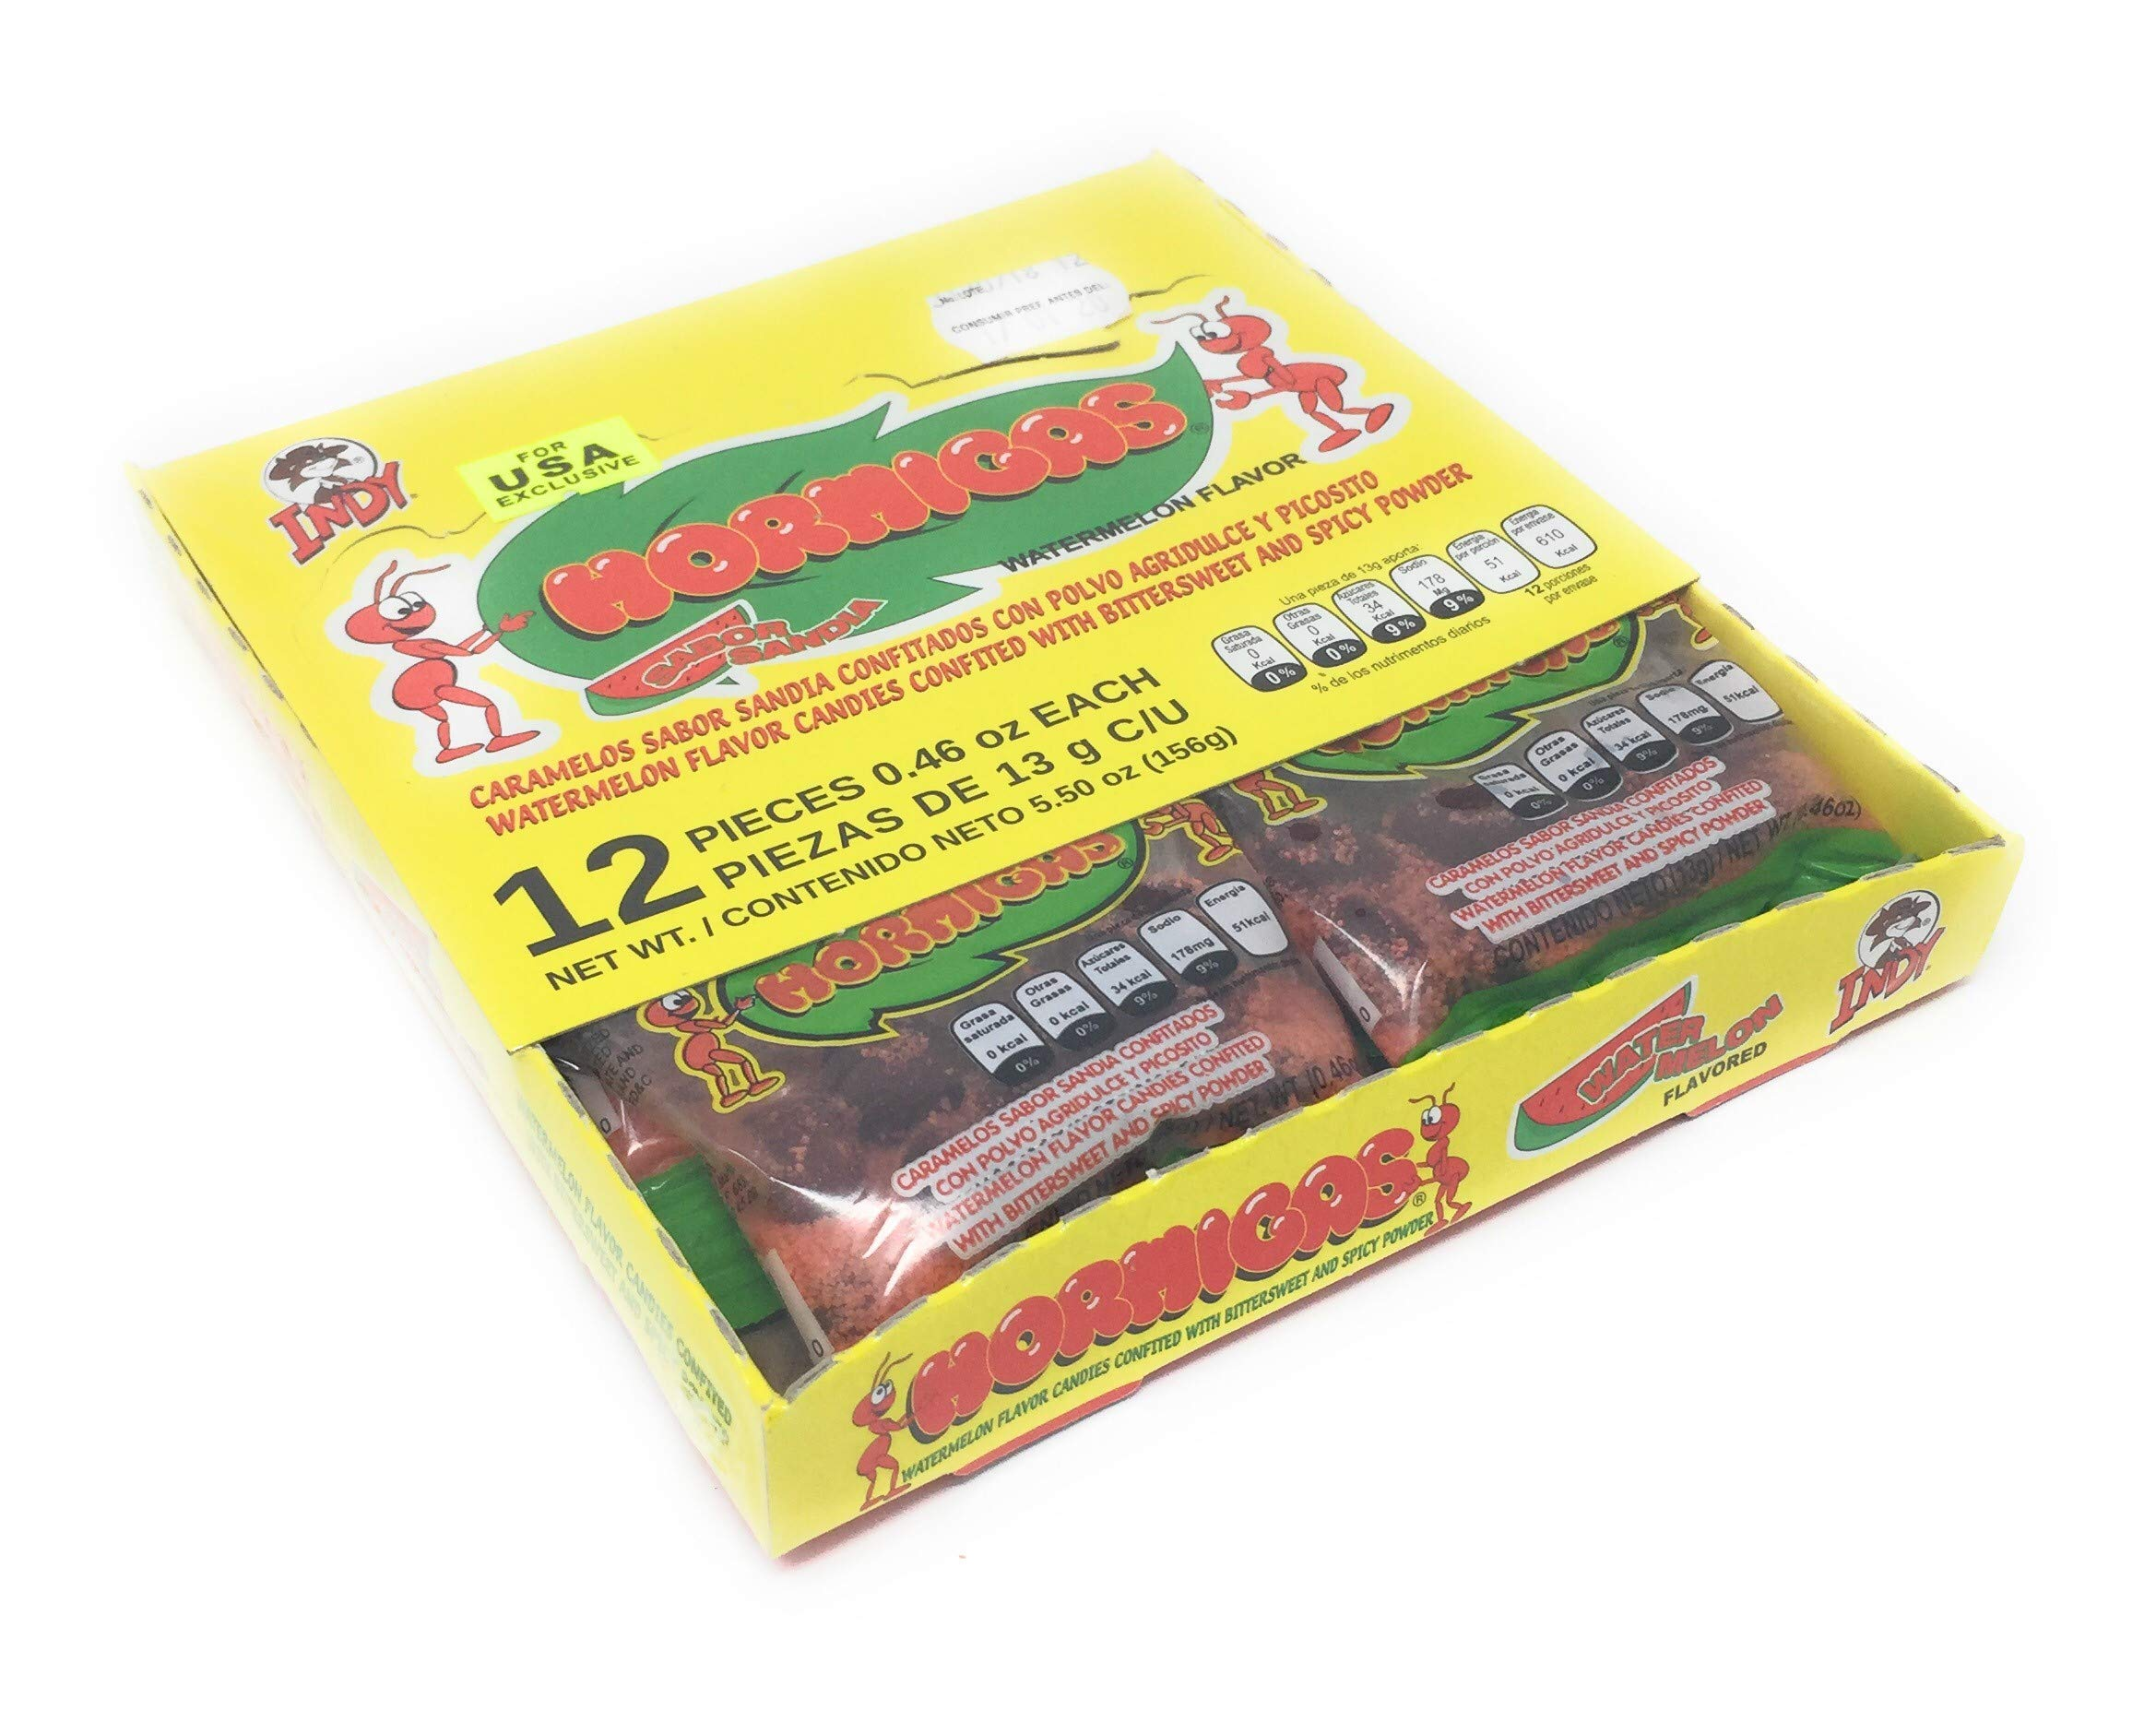 Indy Hormigas Watermelon Flavor Candies with Bittersweet and Spicy Powder